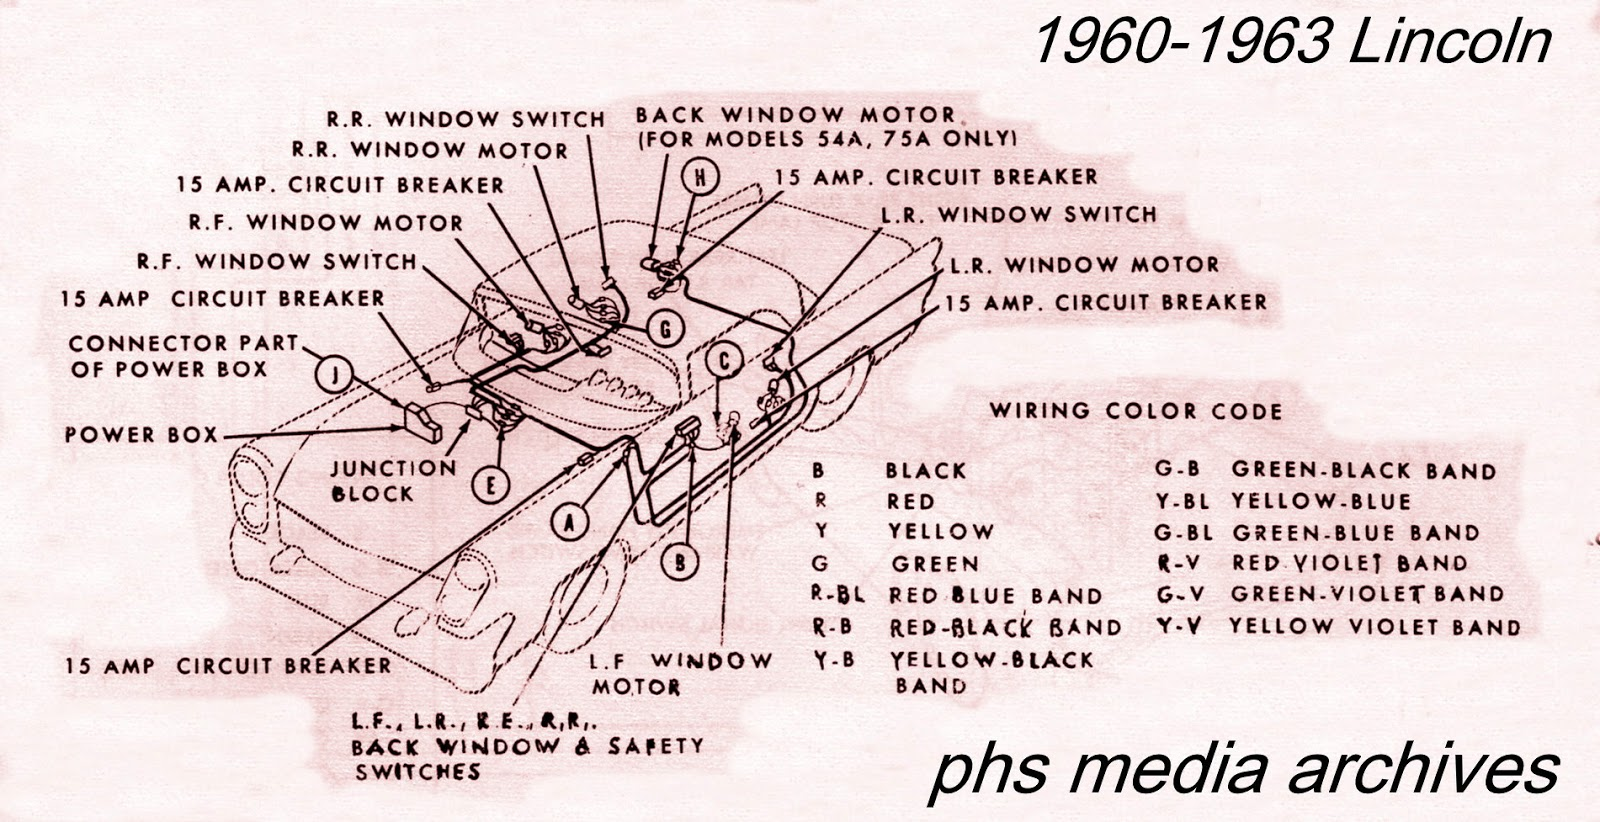 linc%2Ba237 tech series 1960 1964 lincoln wiring diagrams phscollectorcarworld lincoln auto greaser wiring diagram at bayanpartner.co